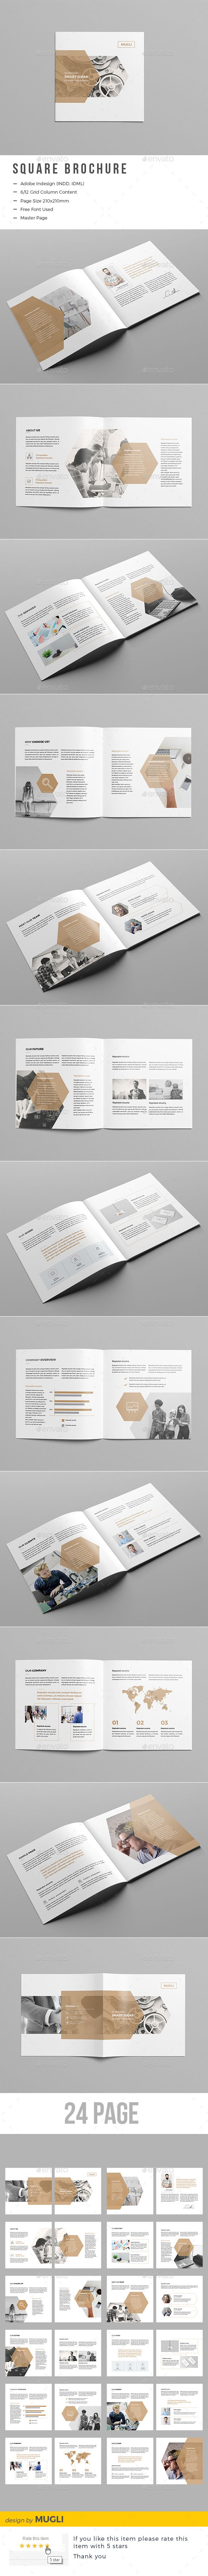 Corporate Square Brochure Template Indesign Indd Praxis